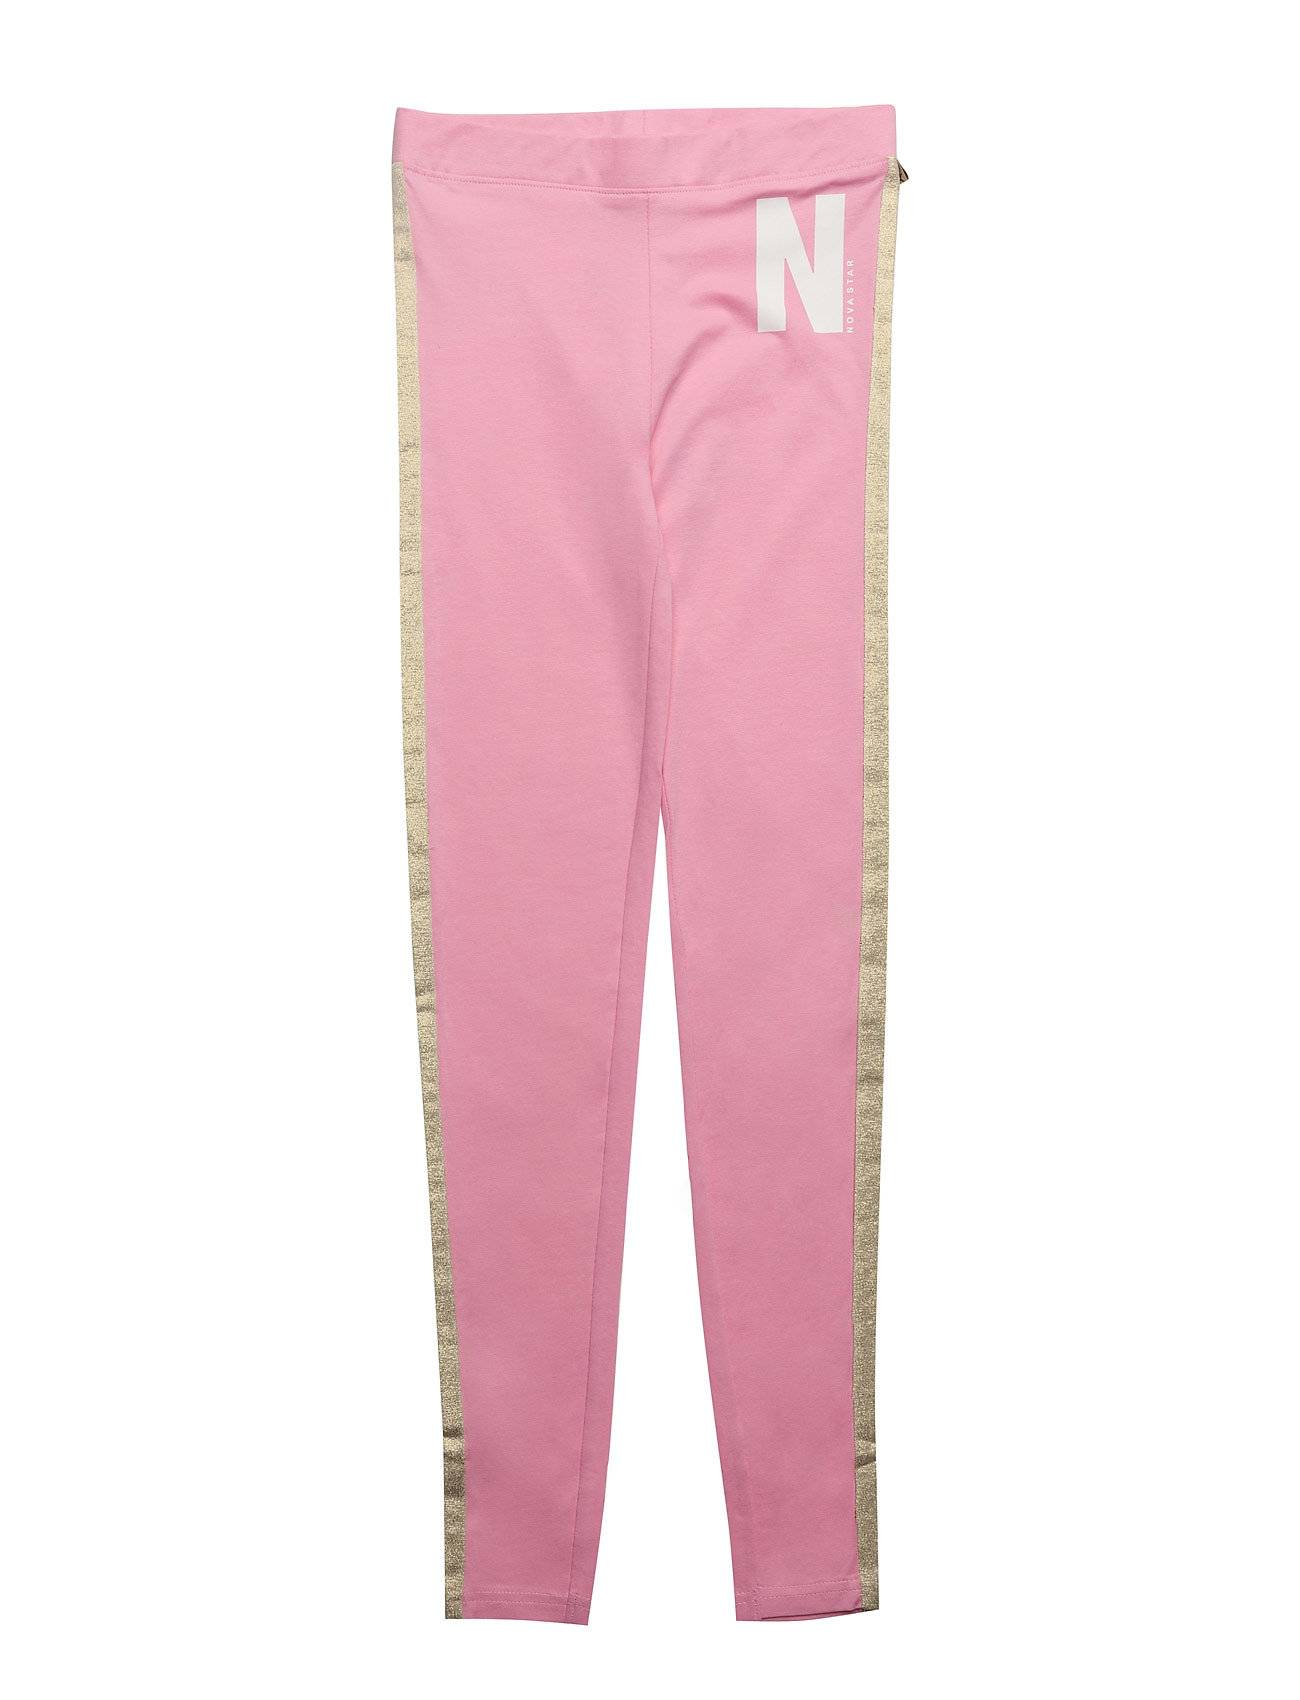 NOVA STAR Leggings Pink/Gold